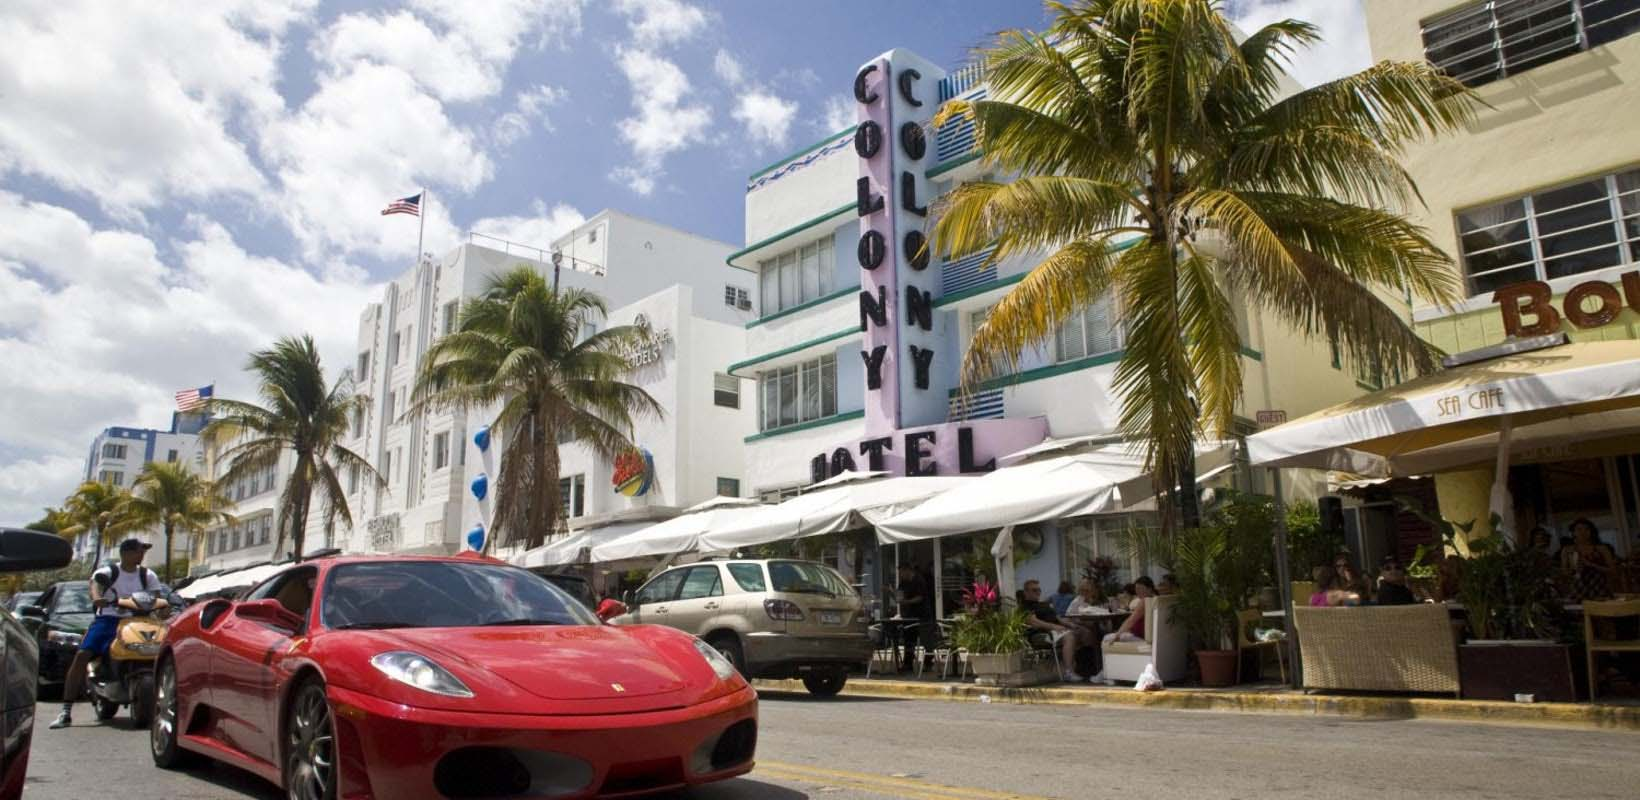 Miami City Tour and Biscayne Bay Boat Tour